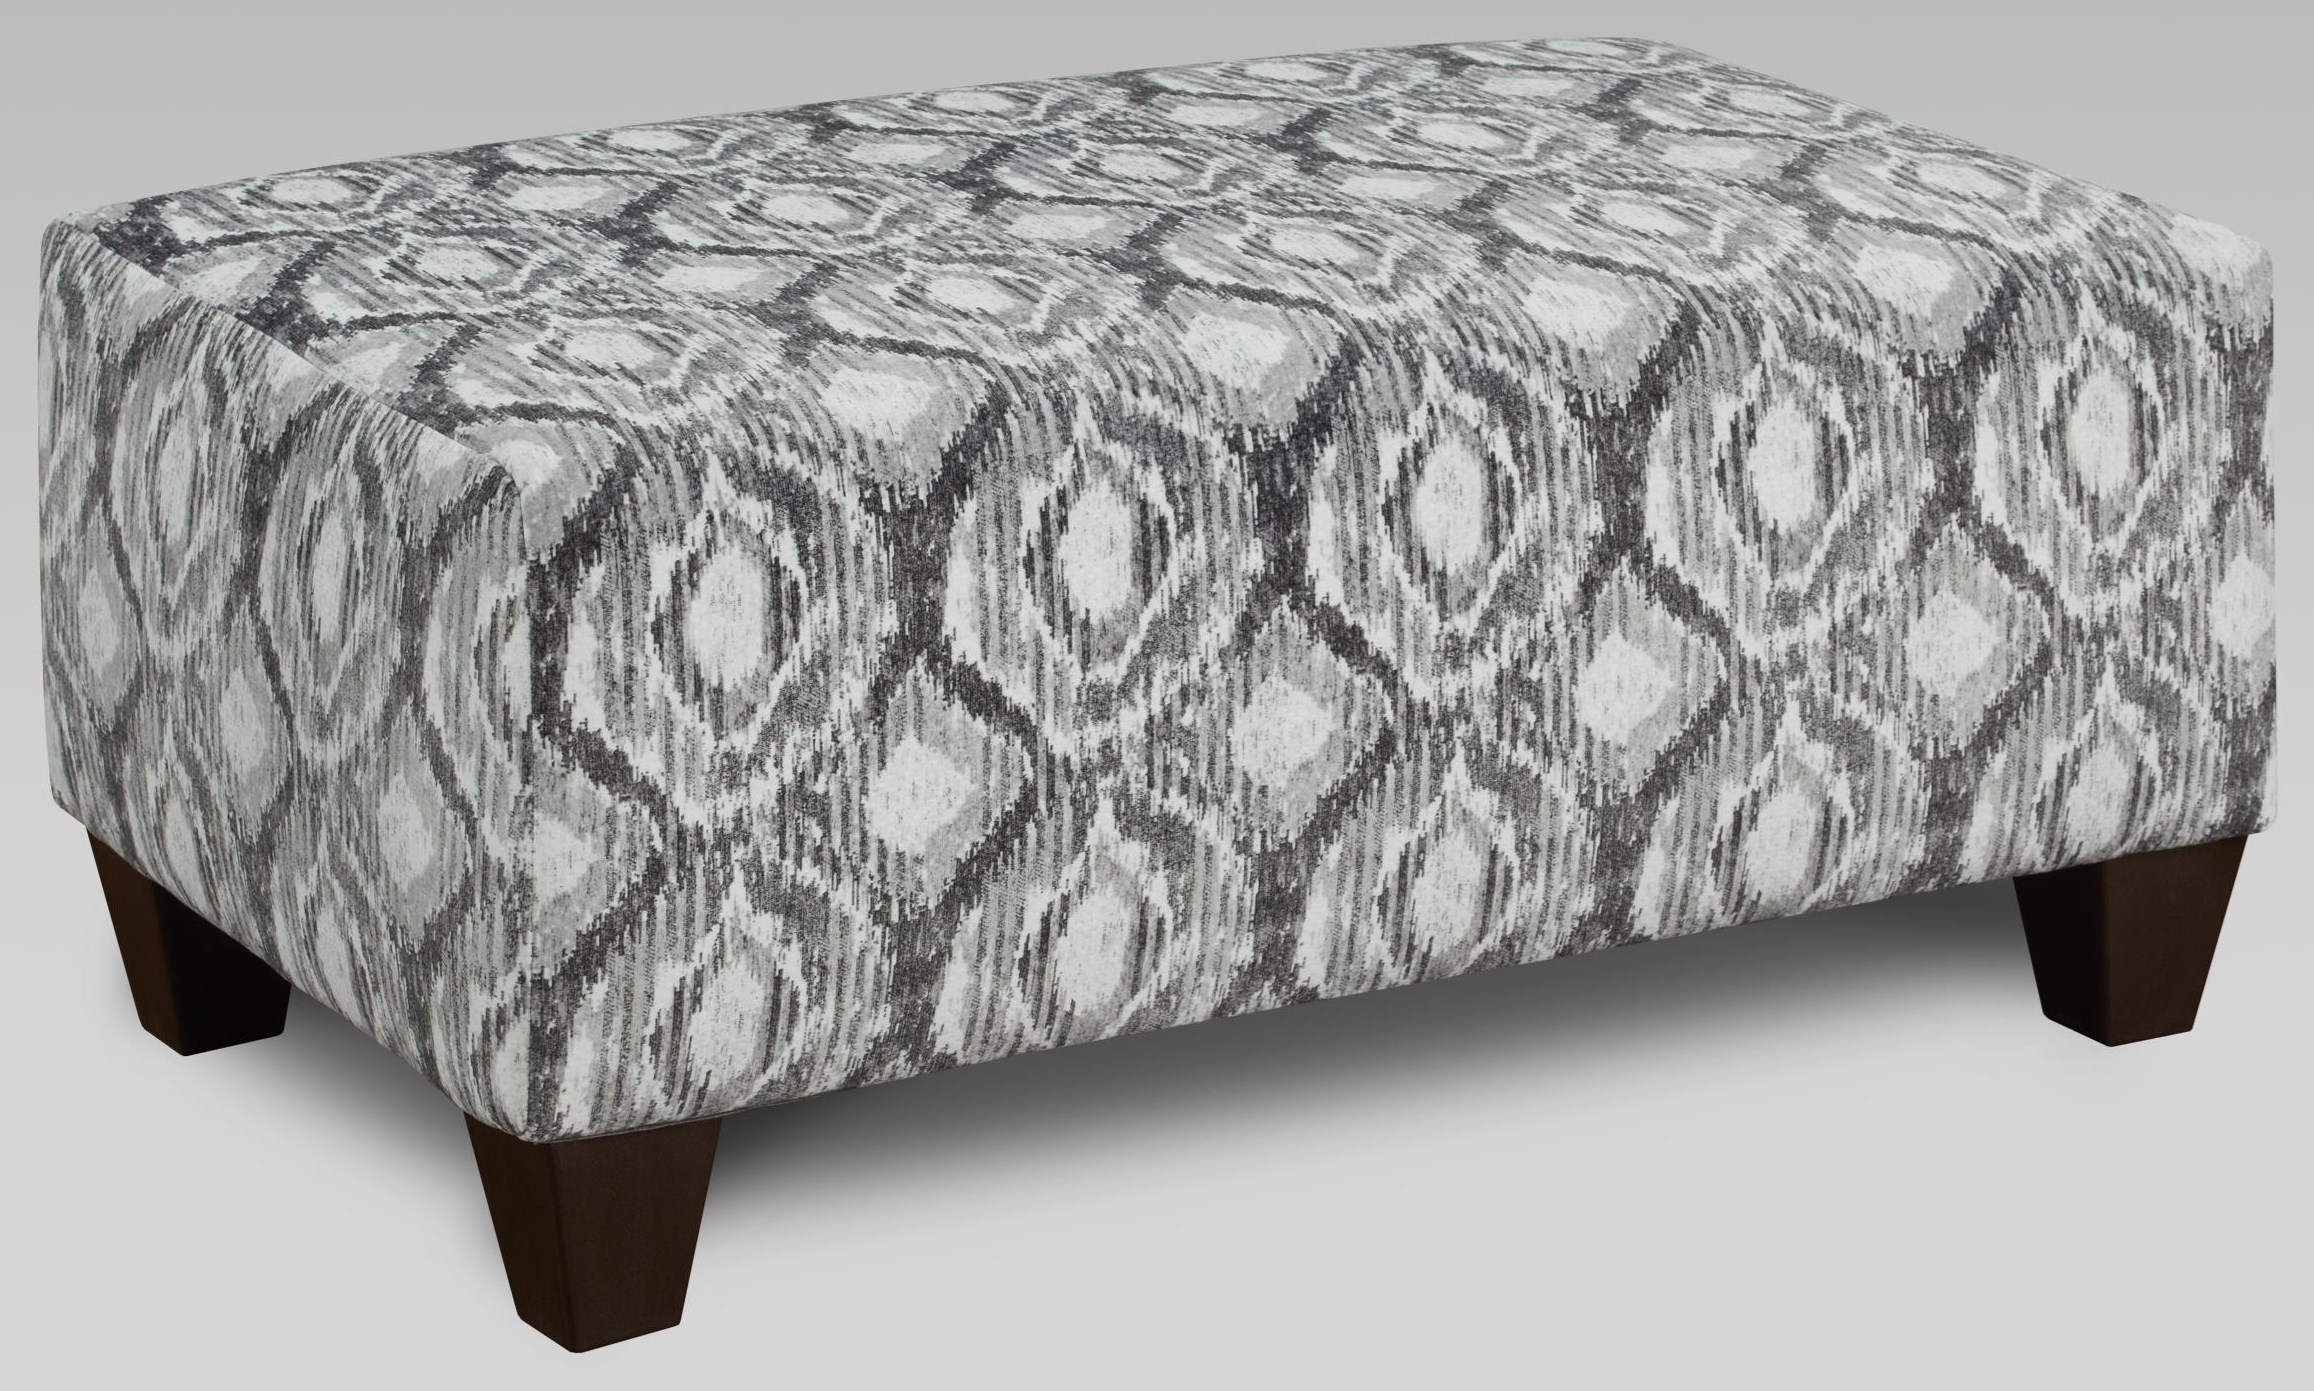 5850 Sectional ACCENT COCKTAIL OTTOMAN by Affordable Furniture at Furniture Fair - North Carolina